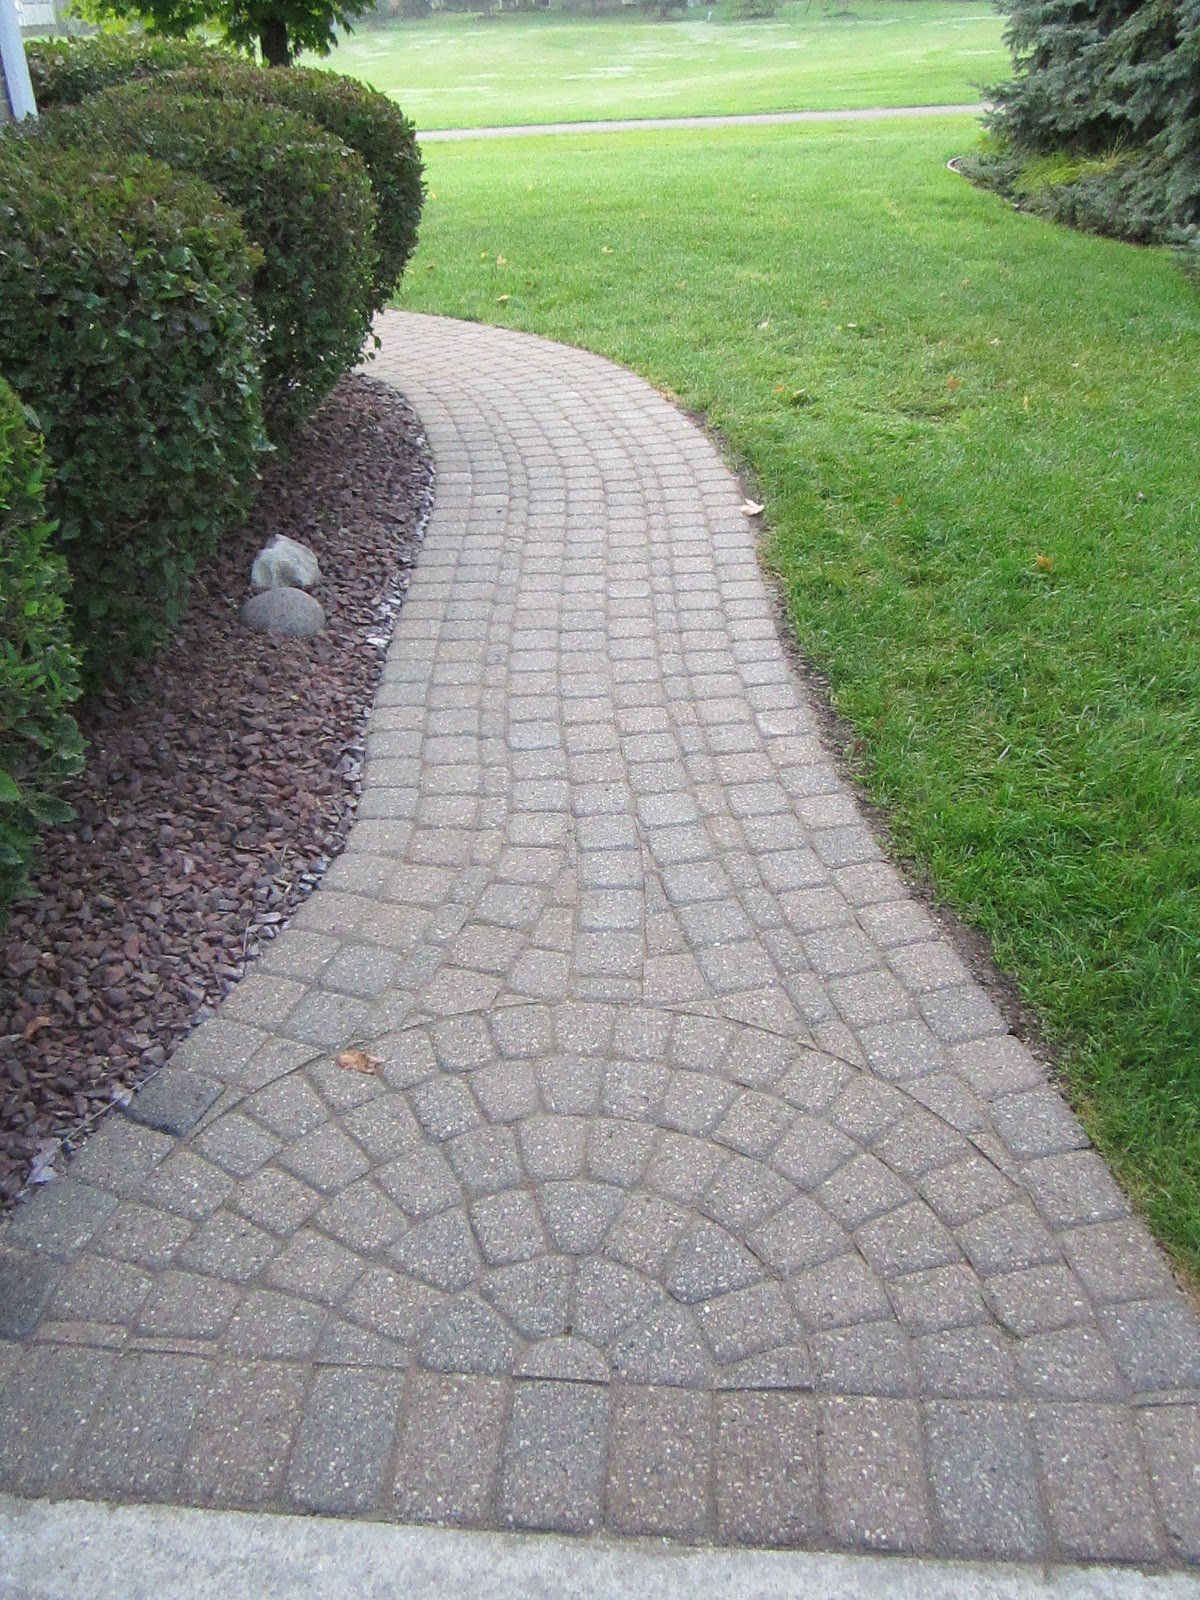 Brick Paver Patio With Fire Pit Cost: Brick Pavers,Canton,Ann Arbor,Plymouth,Patio,Patios,Repair